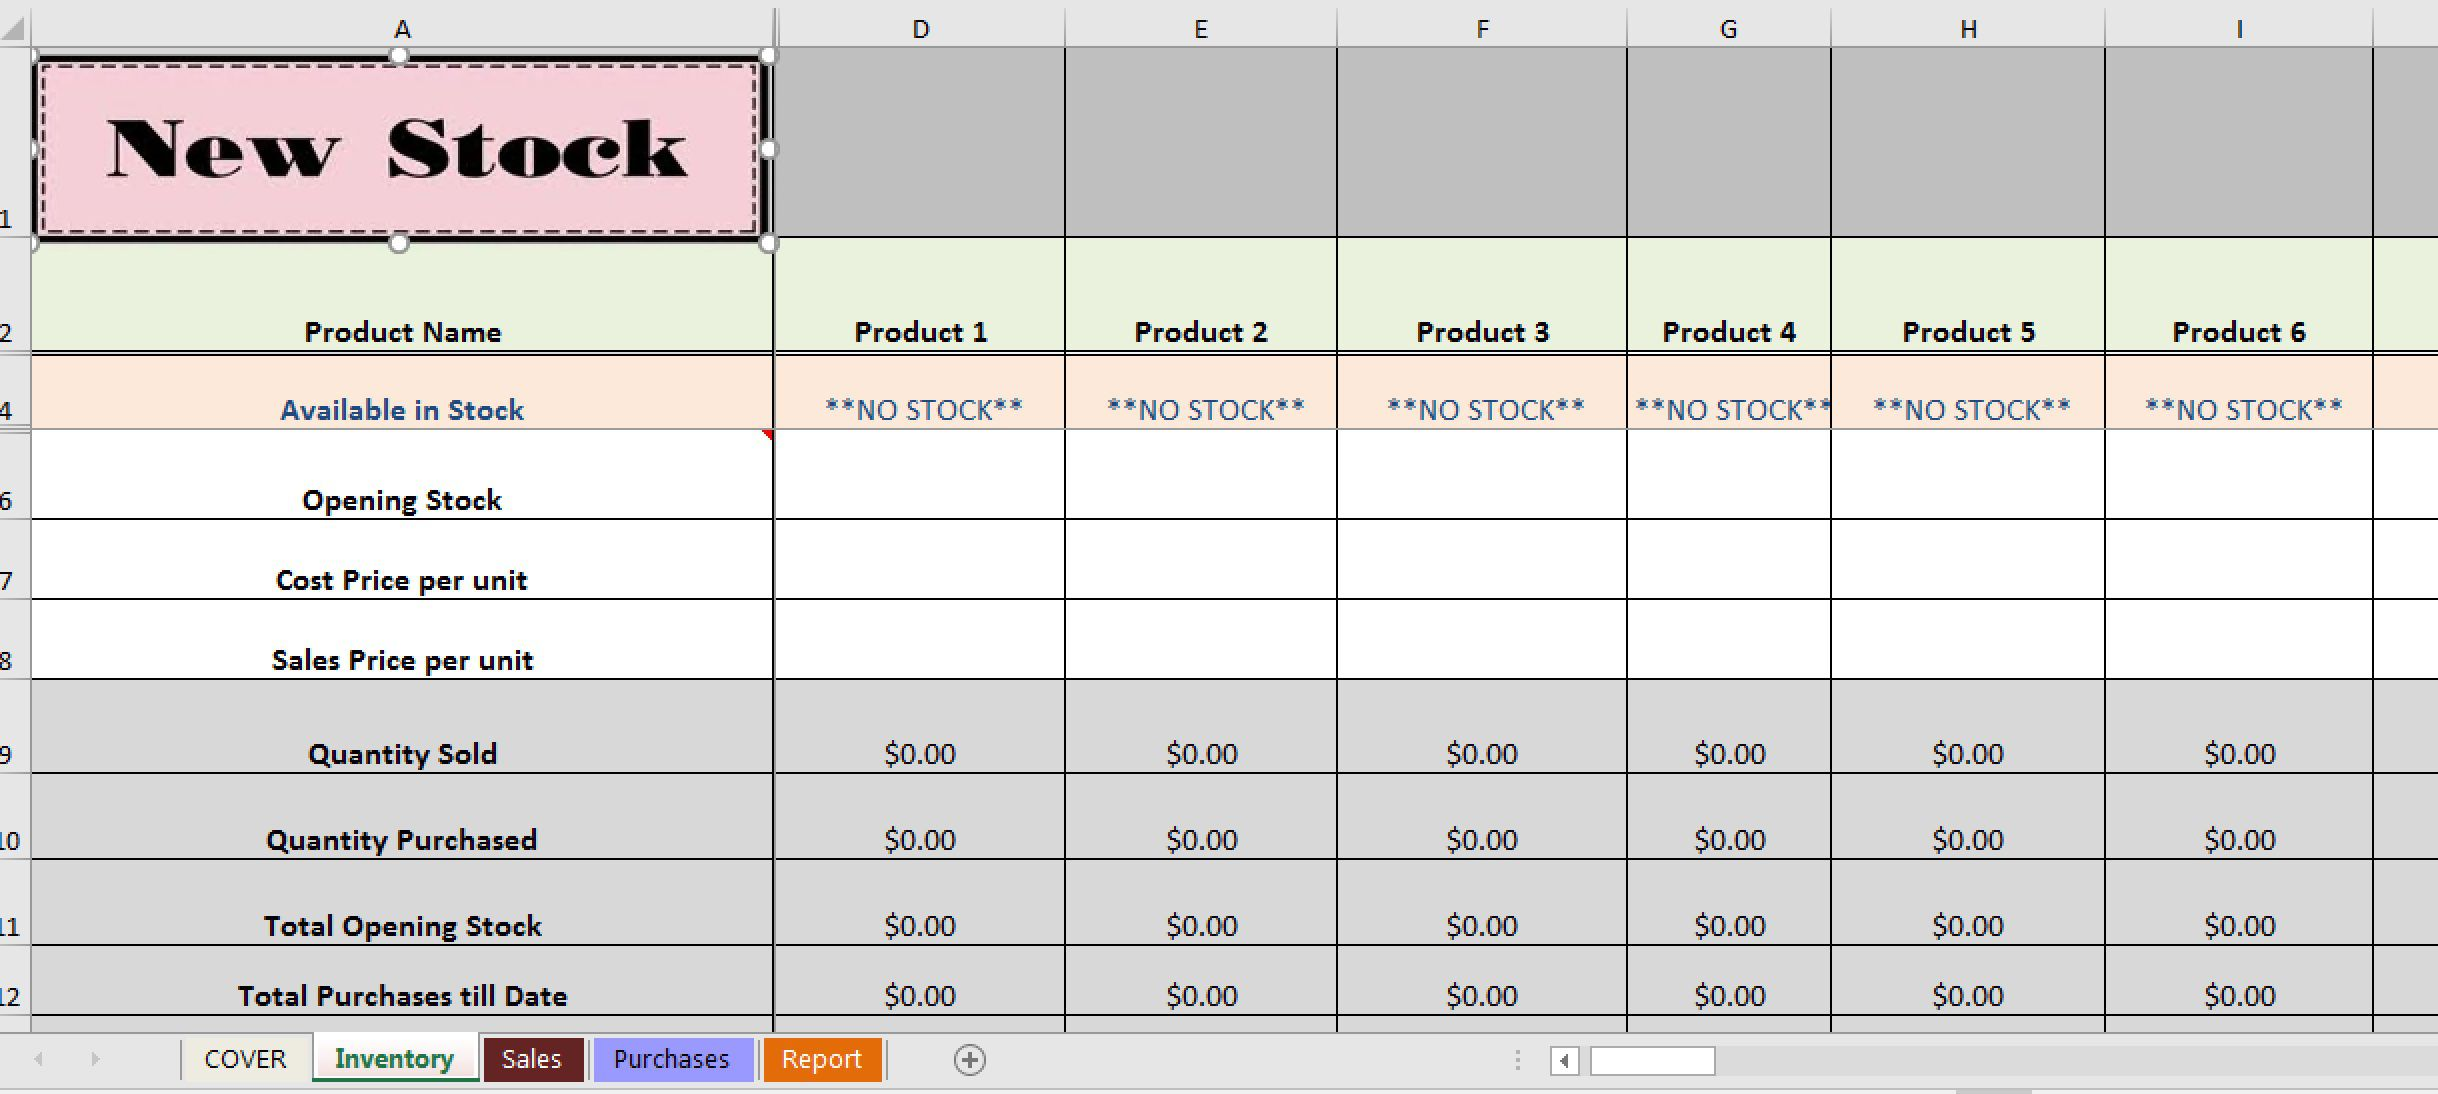 008 Fearsome Excel Inventory Template With Formula High Resolution  Formulas Free Uk PdfFull